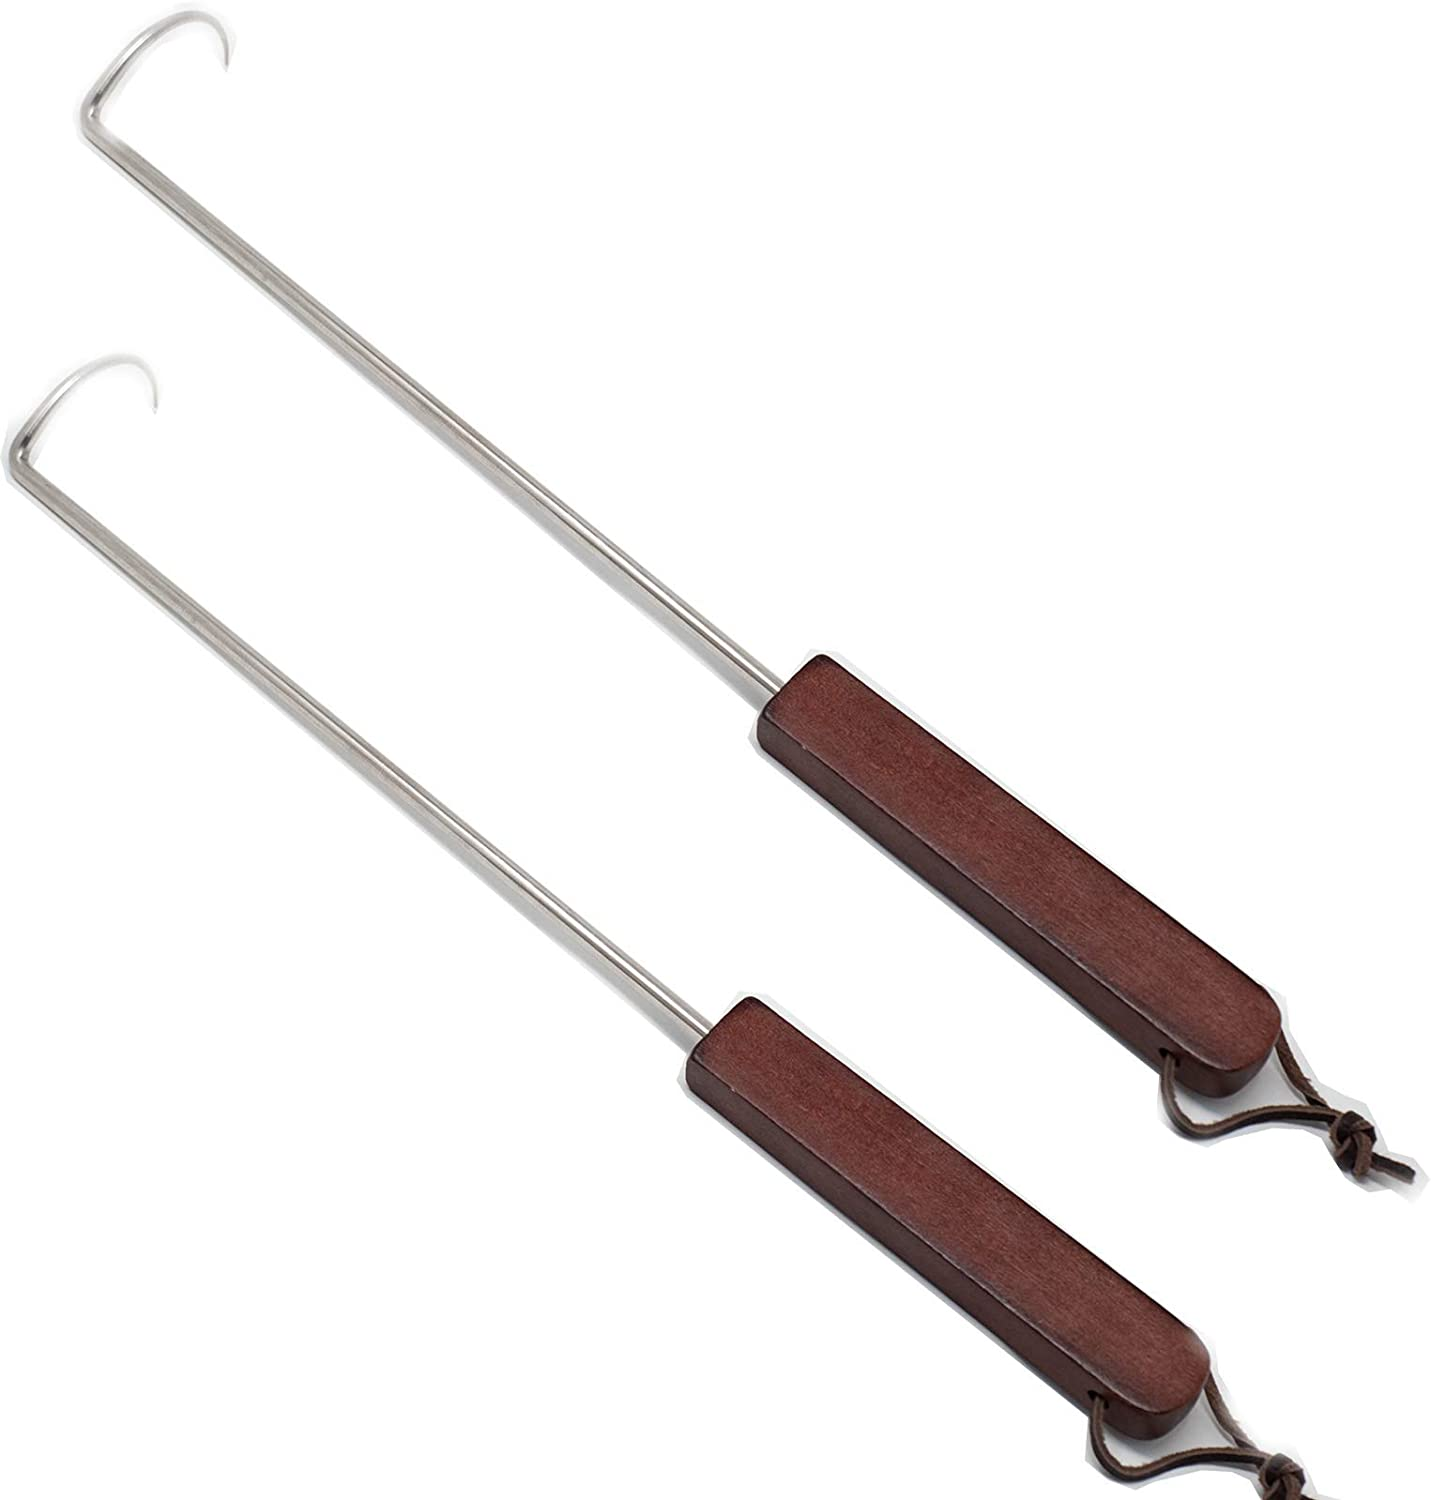 MPAGON Food Flipper Hooks, Stainless Steel BBQ Meat Turner Hook for Grill with Wooden Handle 2Pcs 18 Inches